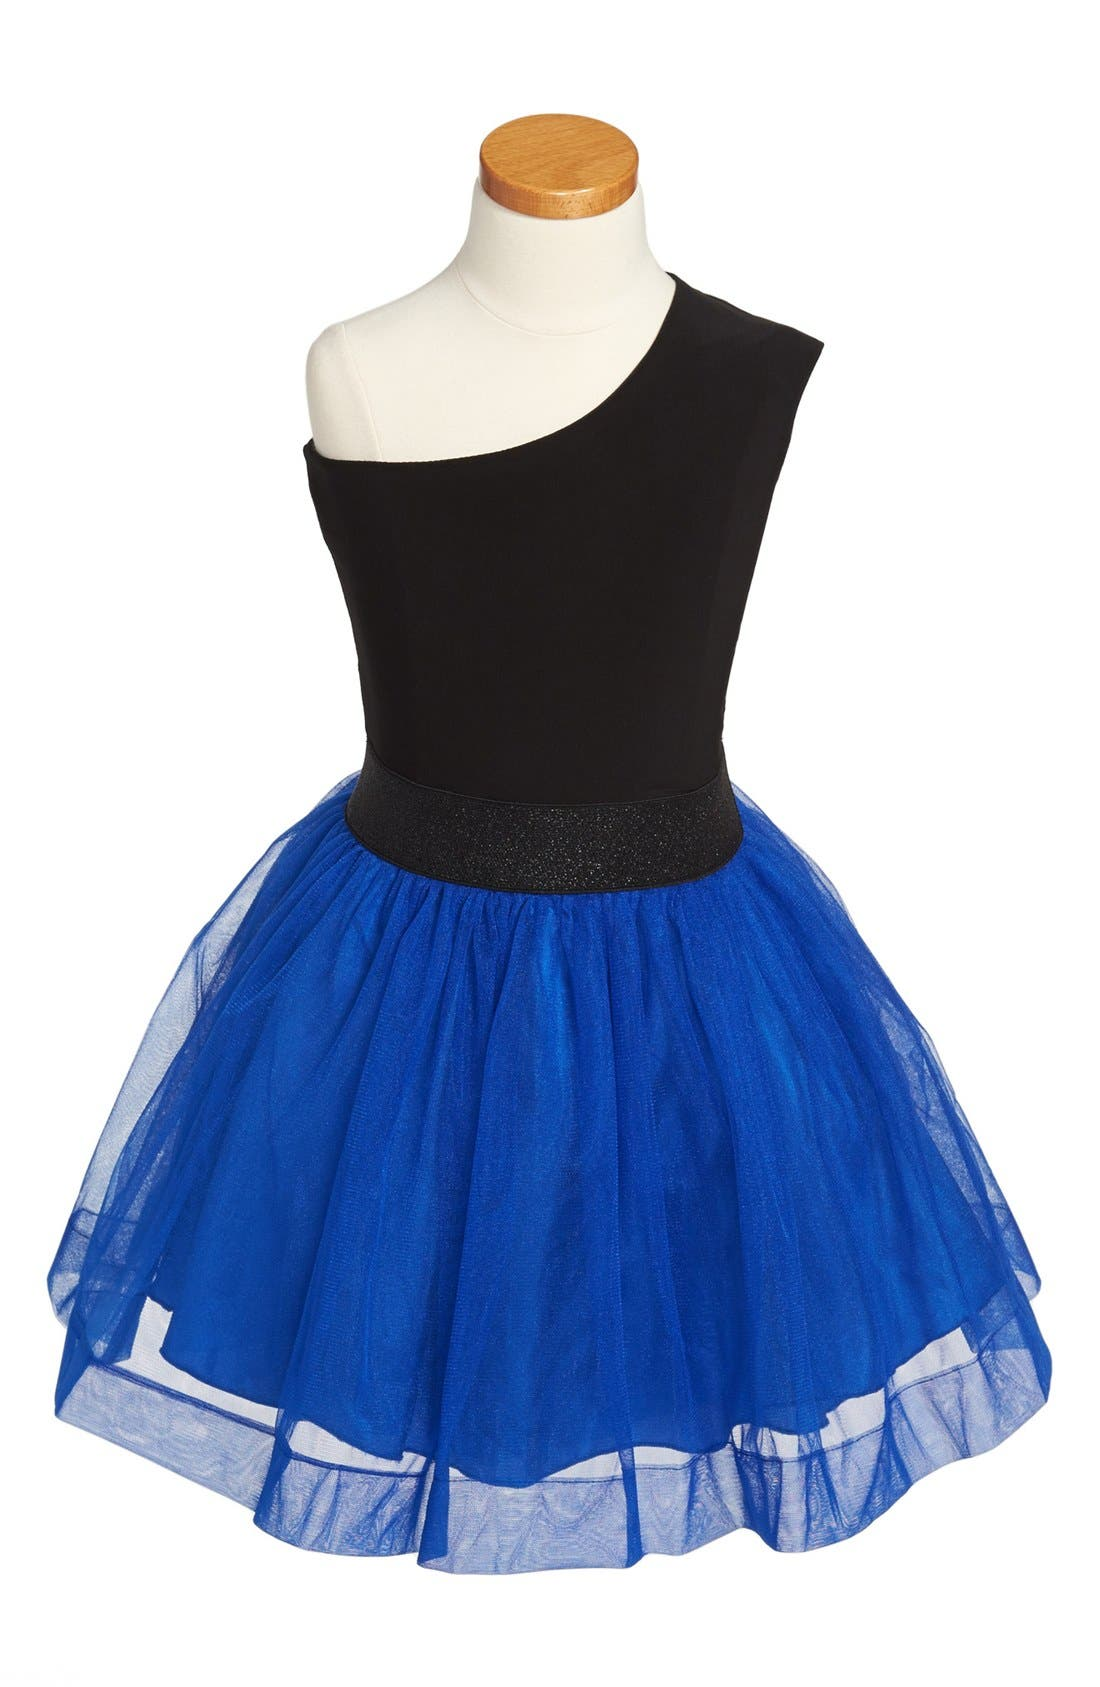 Alternate Image 1 Selected - Un Deux Trois One-Shoulder Tulle Dress (Big Girls)